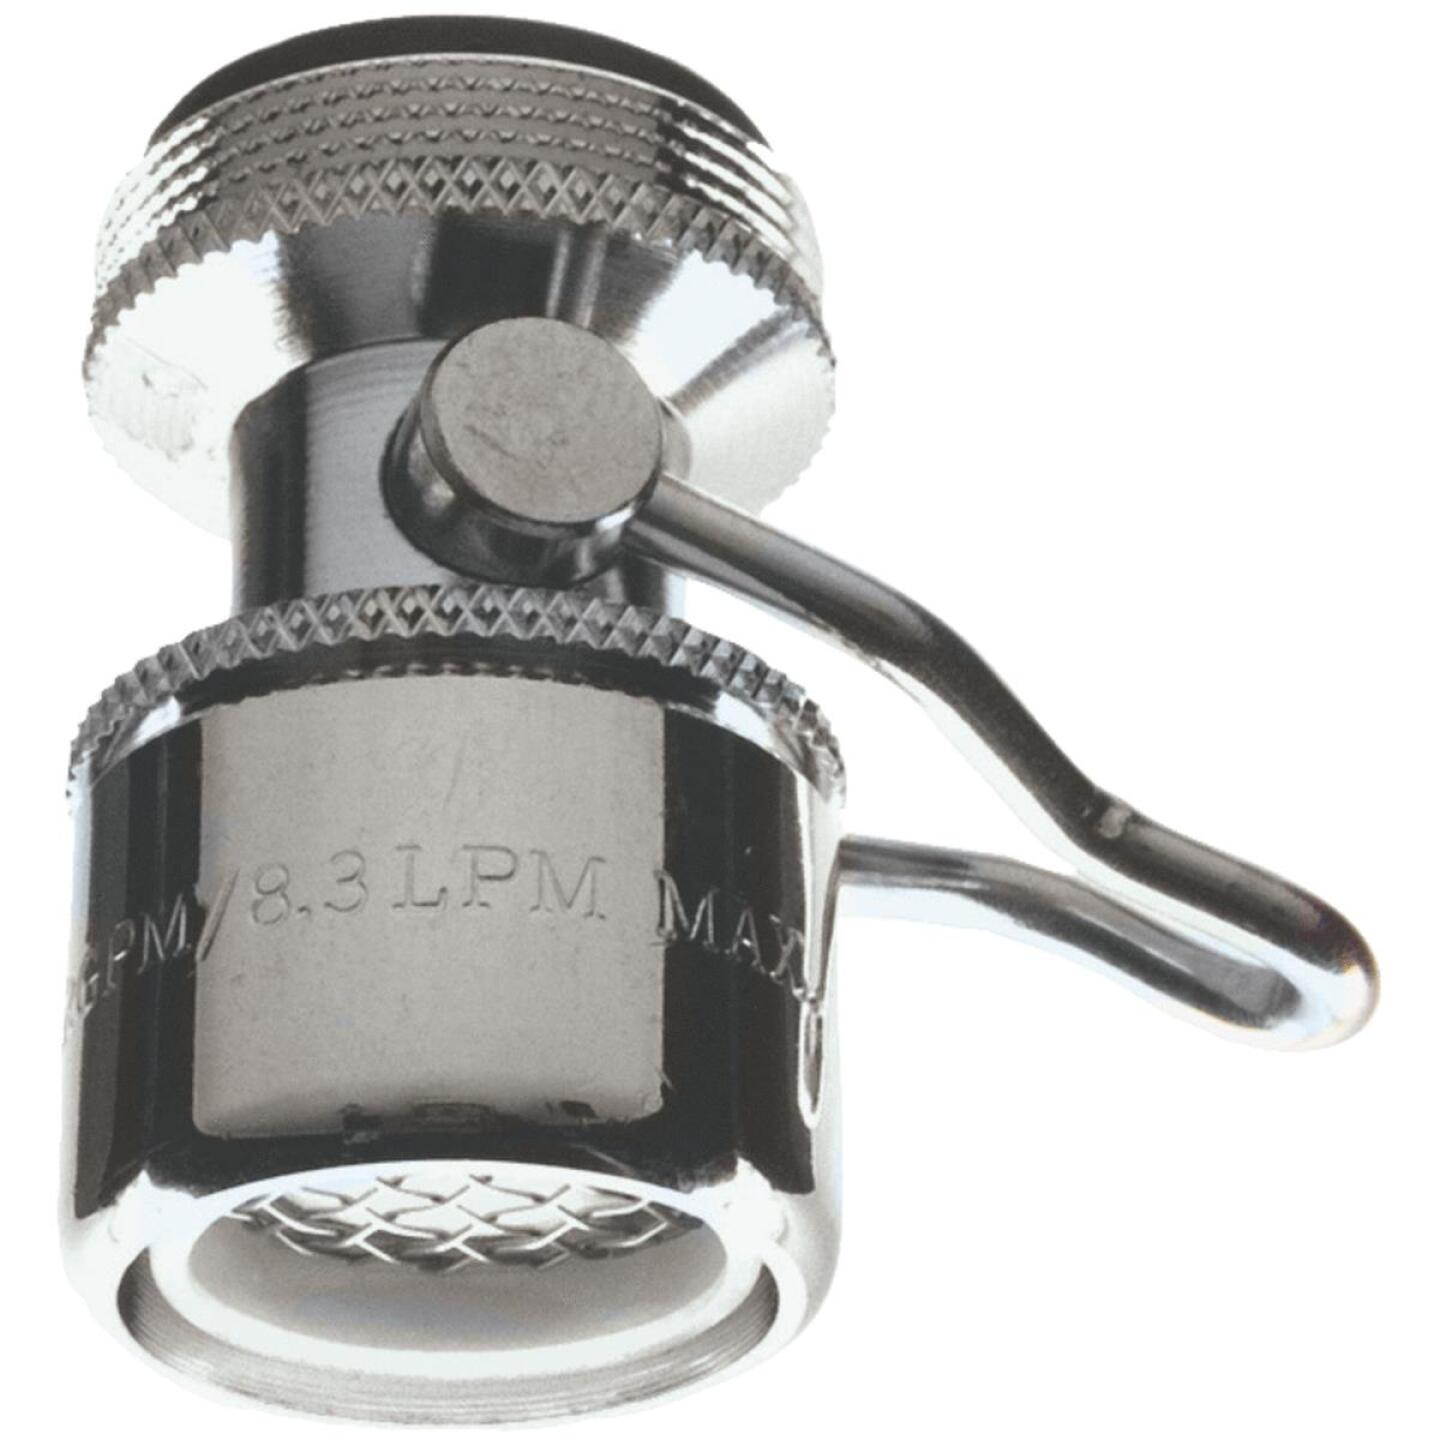 Do it 1.5 GPM Dual Thread Faucet Aerator with On/Off Switch Image 1